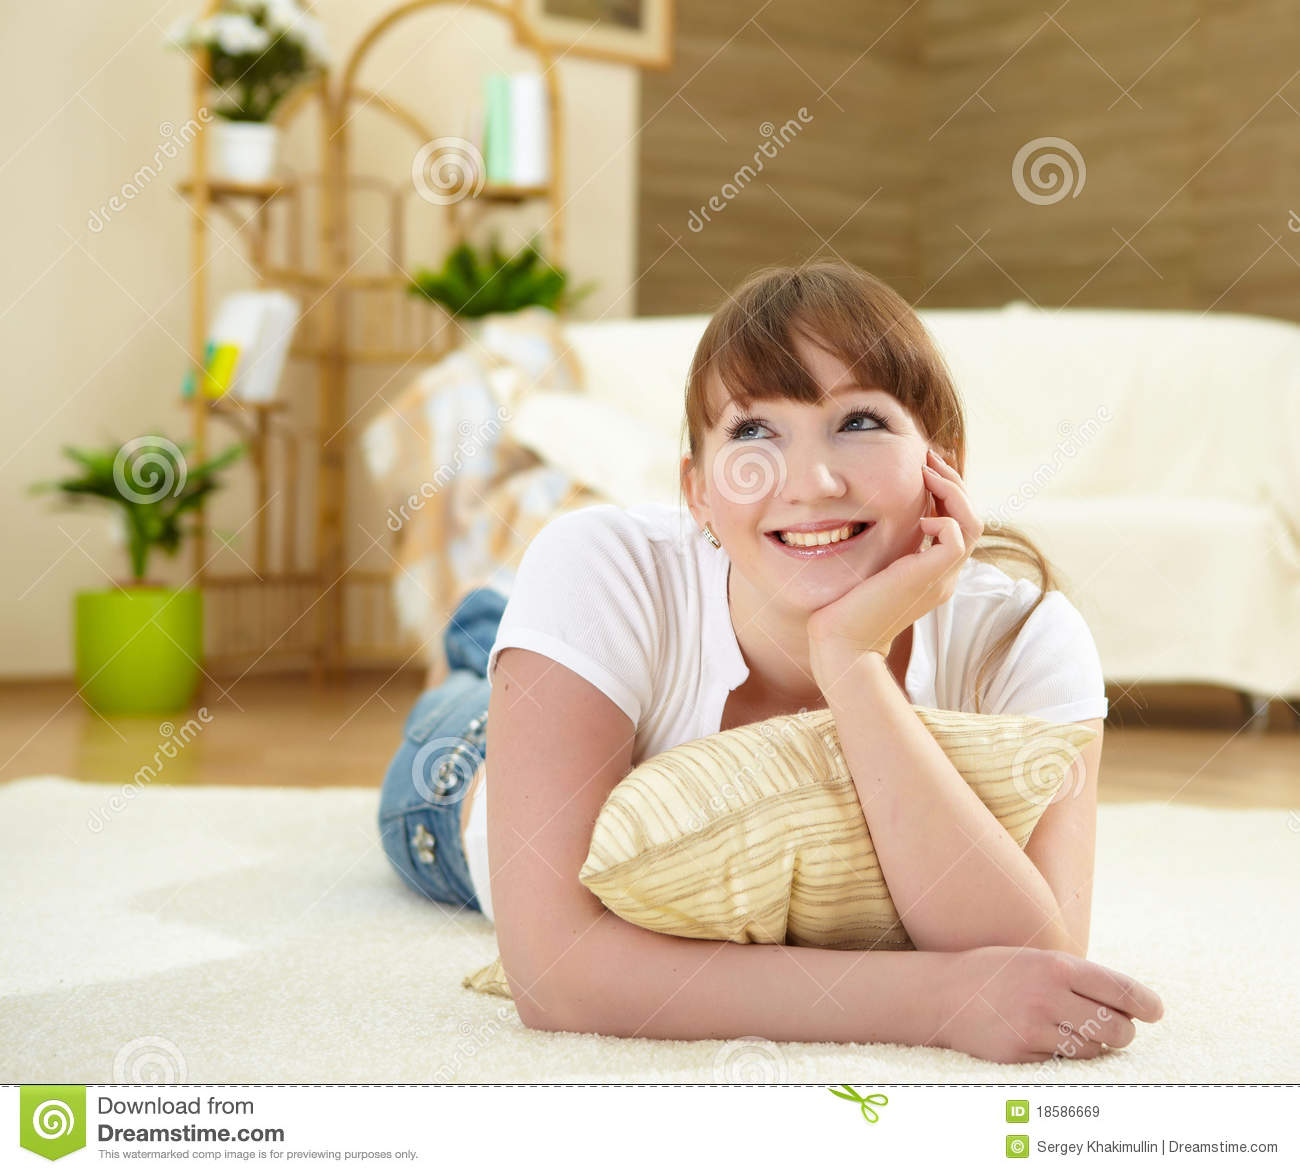 Young Woman Relaxing At Home On The Floor Stock Image